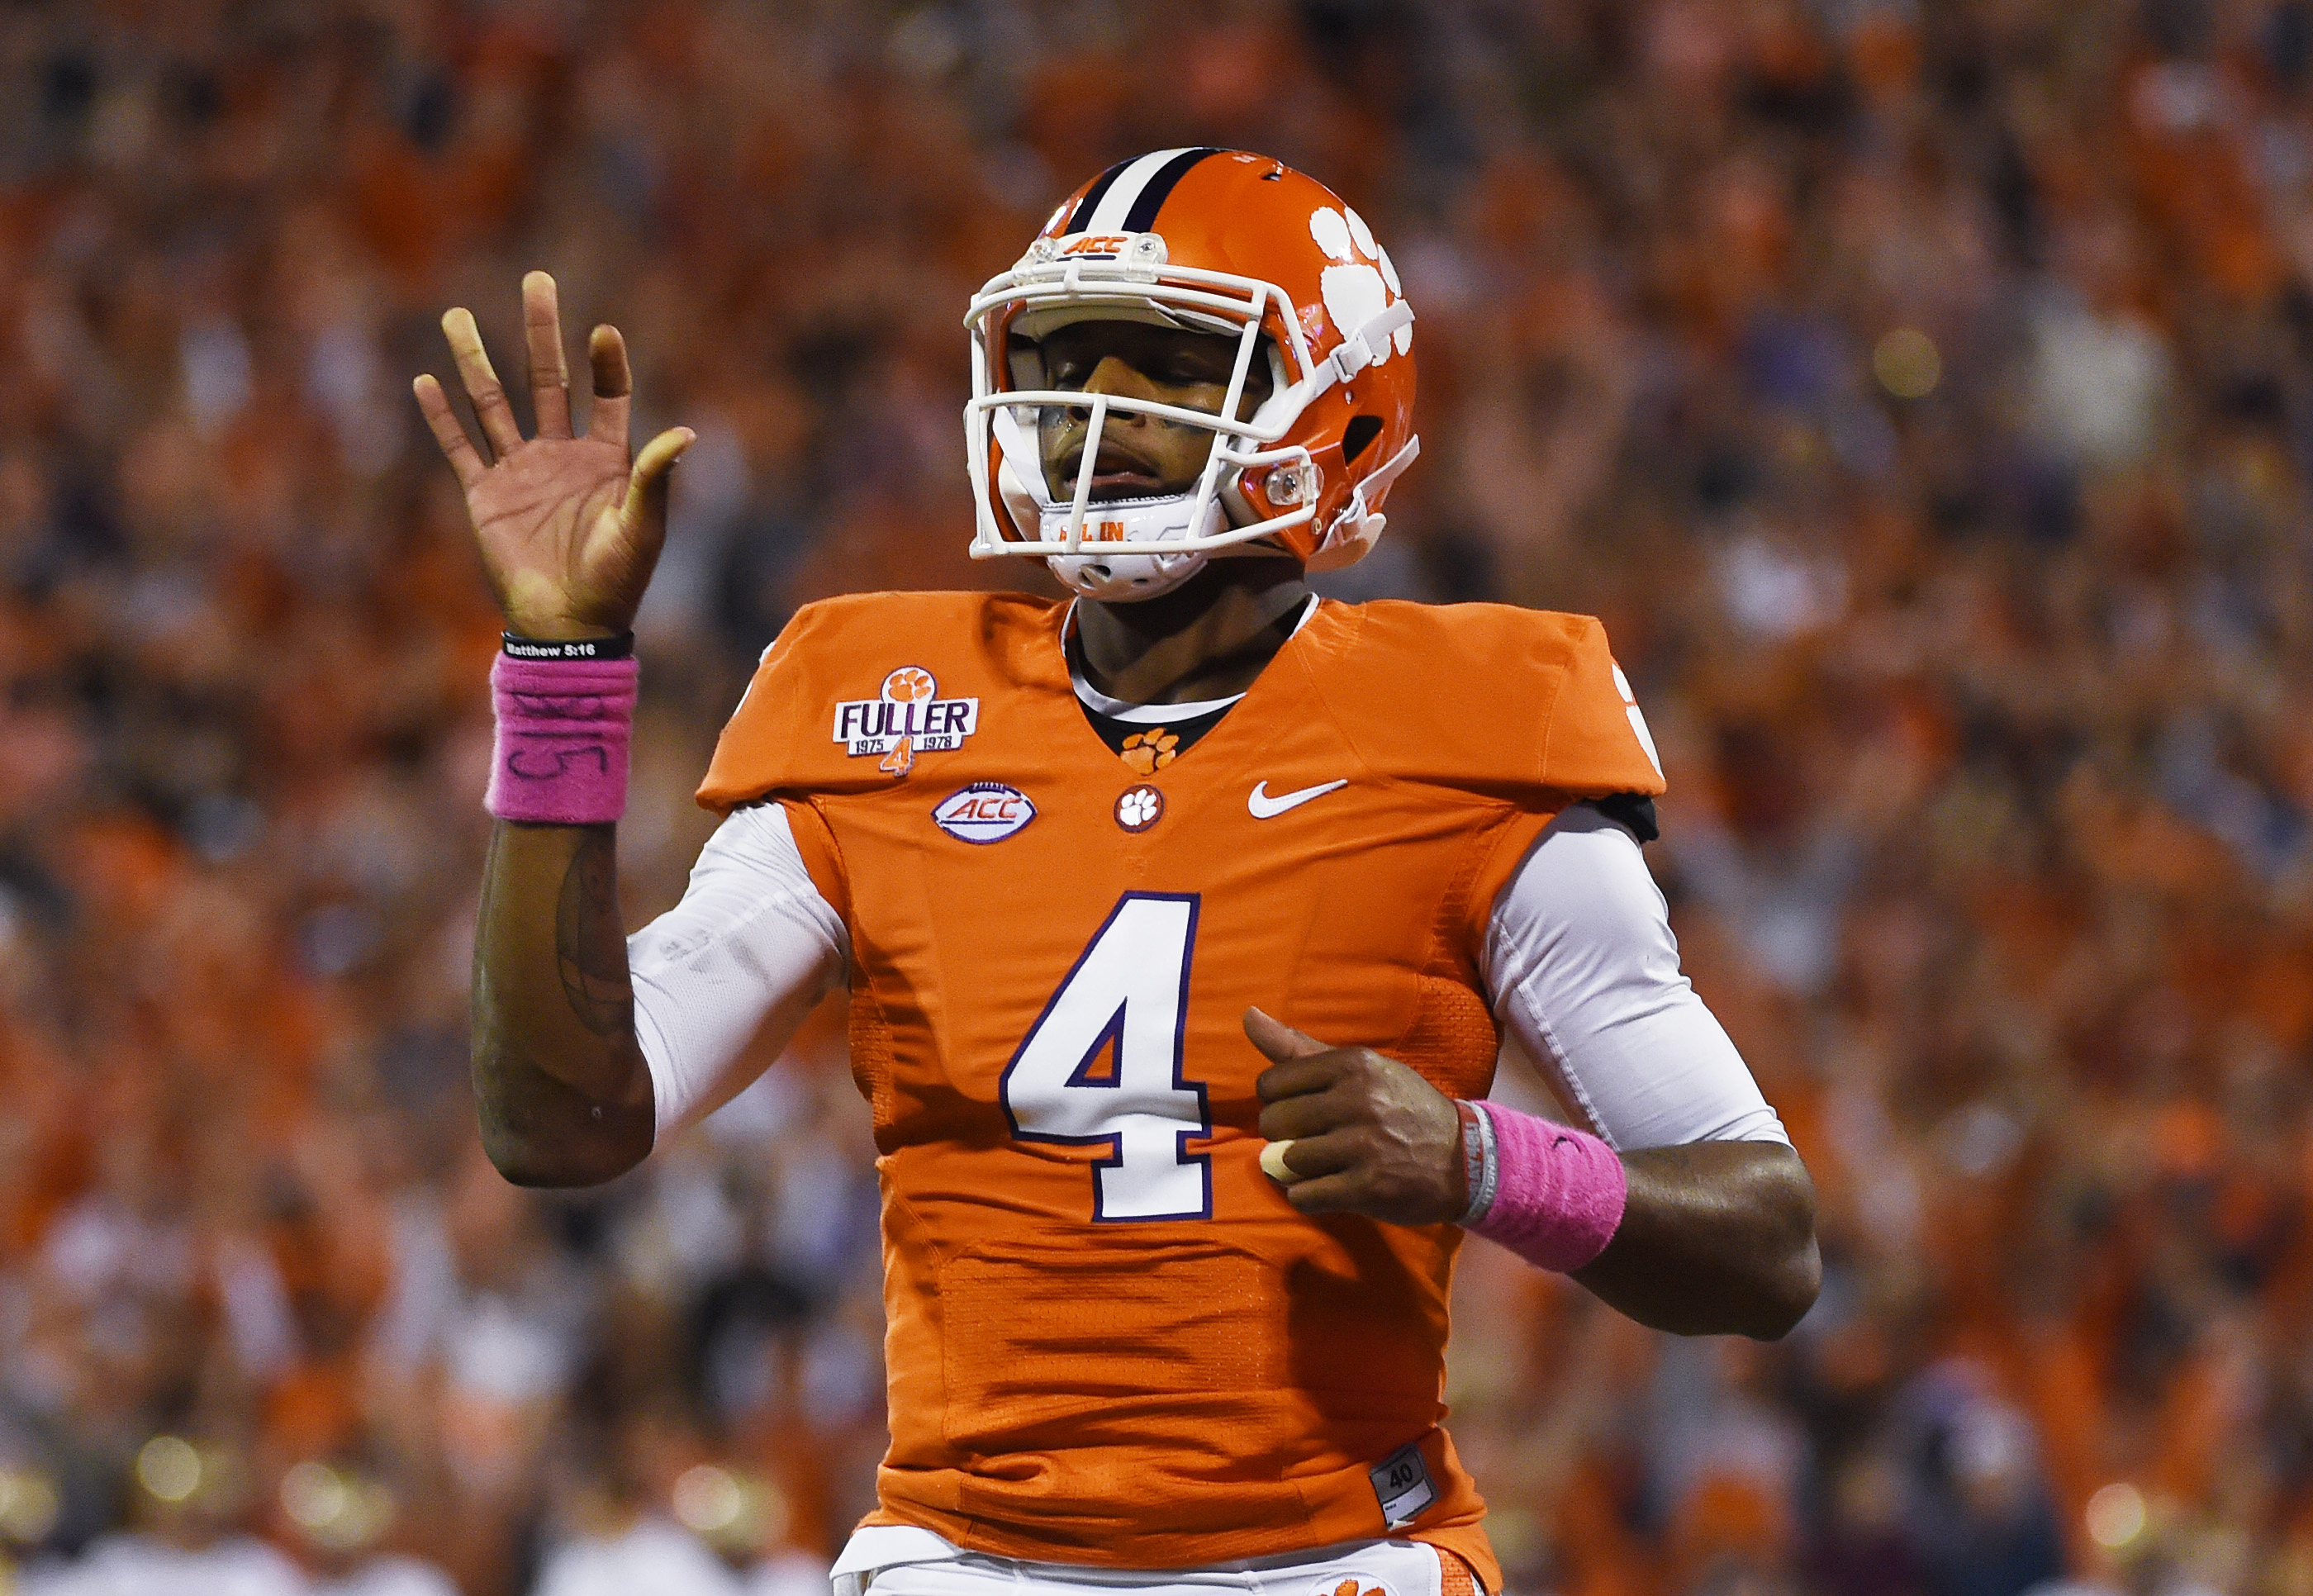 Clemson quarterback Deshaun Watson (4) waves to fans after scoring a touchdown against Boston College during the first half of an NCAA college football game, Saturday, Oct. 17, 2015, in Clemson, S.C. (AP Photo/Rainier Ehrhardt)